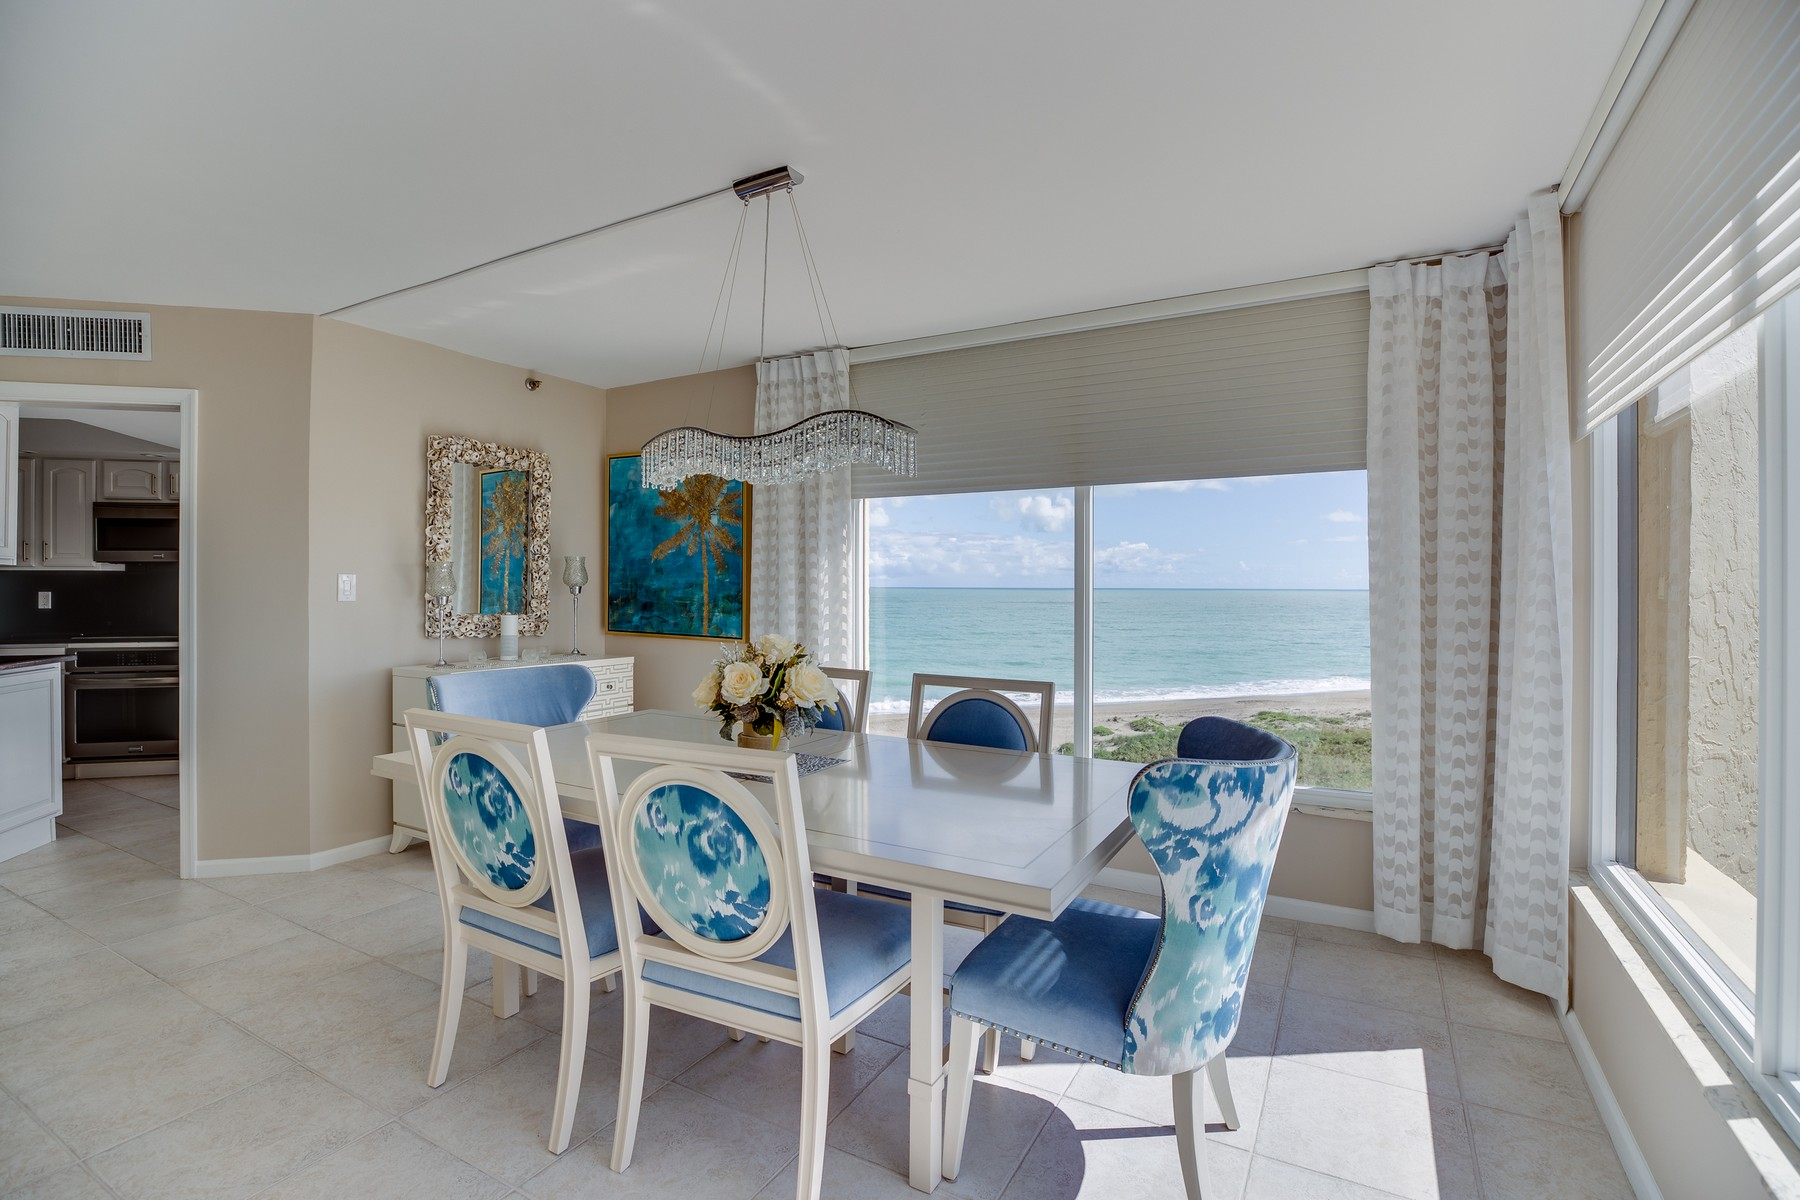 Property para Venda às Sensational Water Views! 2400 S Ocean Drive 8174 Fort Pierce, Florida 34949 Estados Unidos